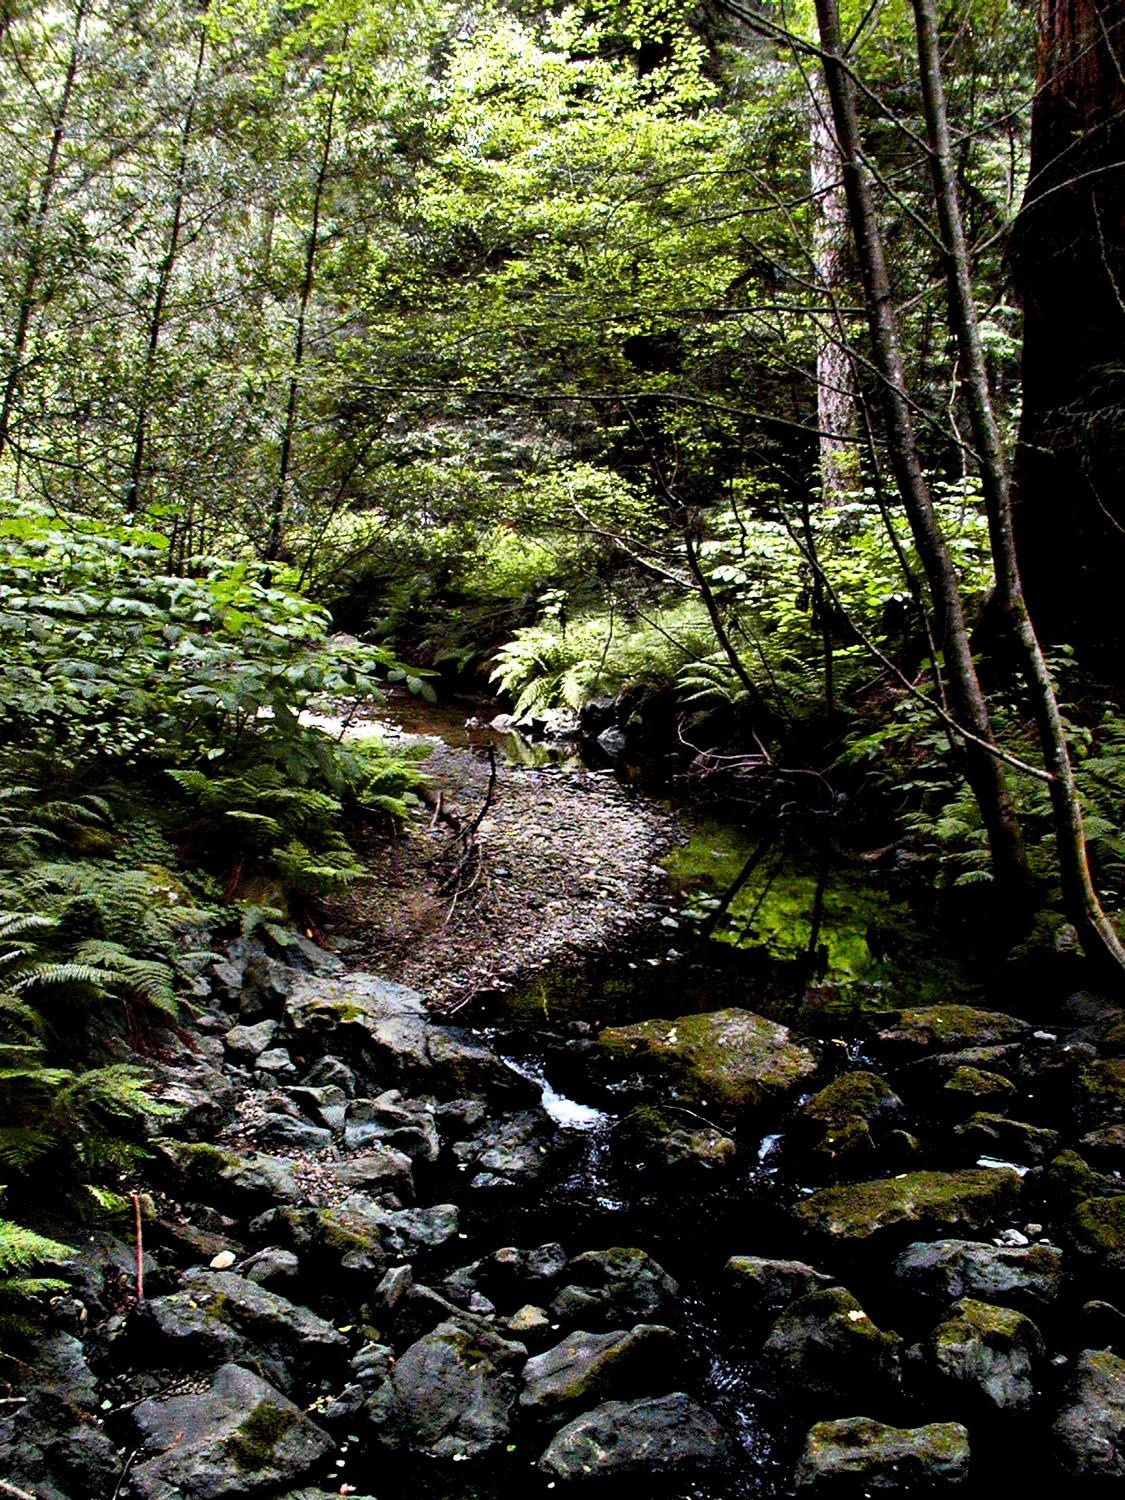 - A stream in the Muir Woods. - - Olympus C-2100UZ - Olympus C-2100 Ultra Zoom - Tony Karp, design, art, photography, techno-impressionist, techno-impressionism, aerial photography , drone , drones , dji , mavic pro , video , 3D printing - Books -